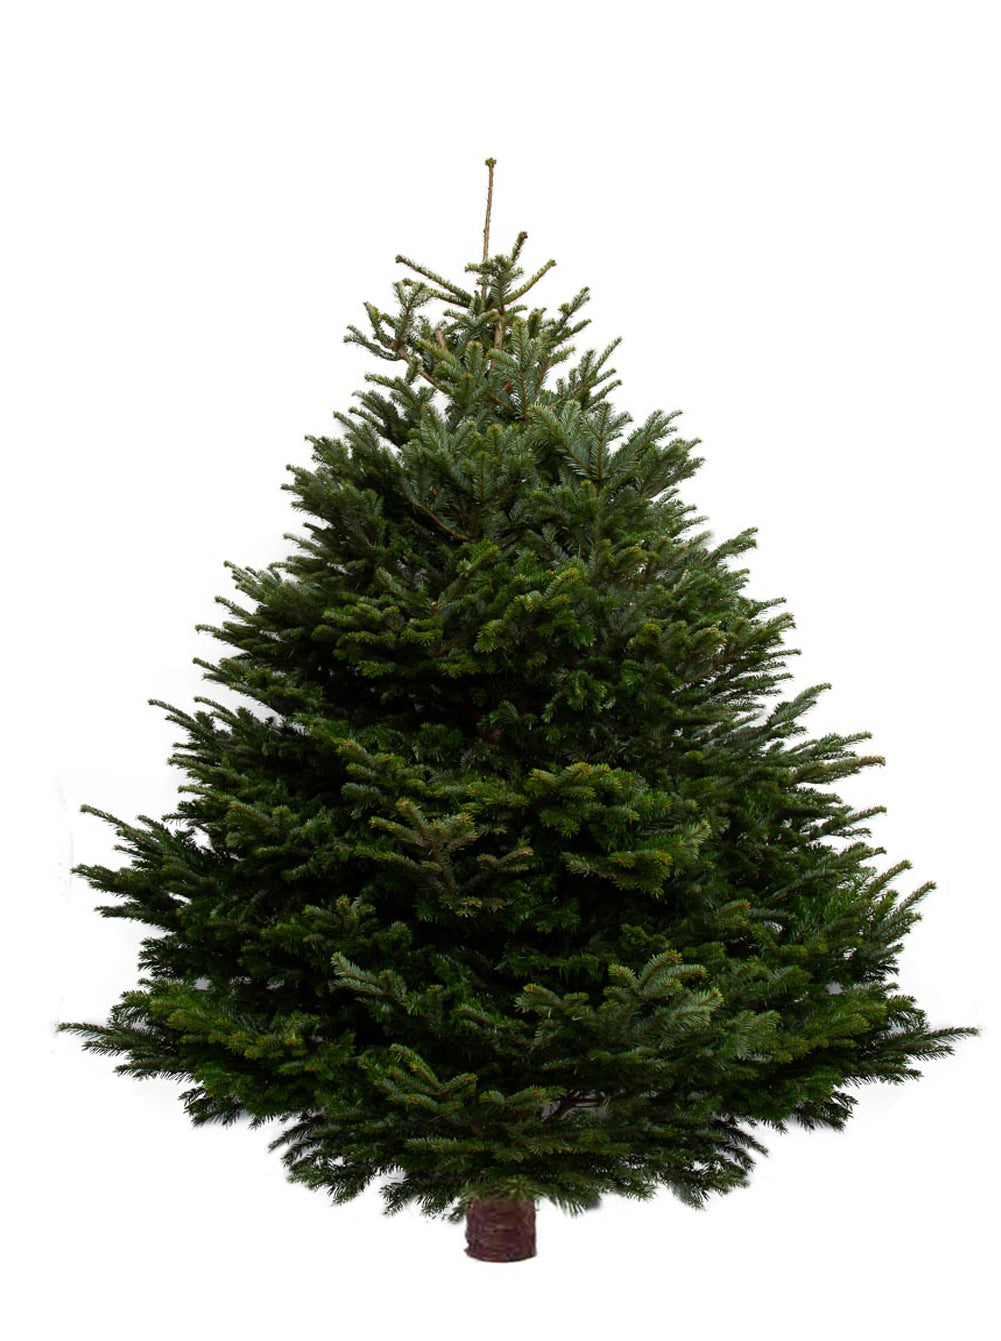 9ft Nordmann Fir Christmas Tree from Pines and Needles